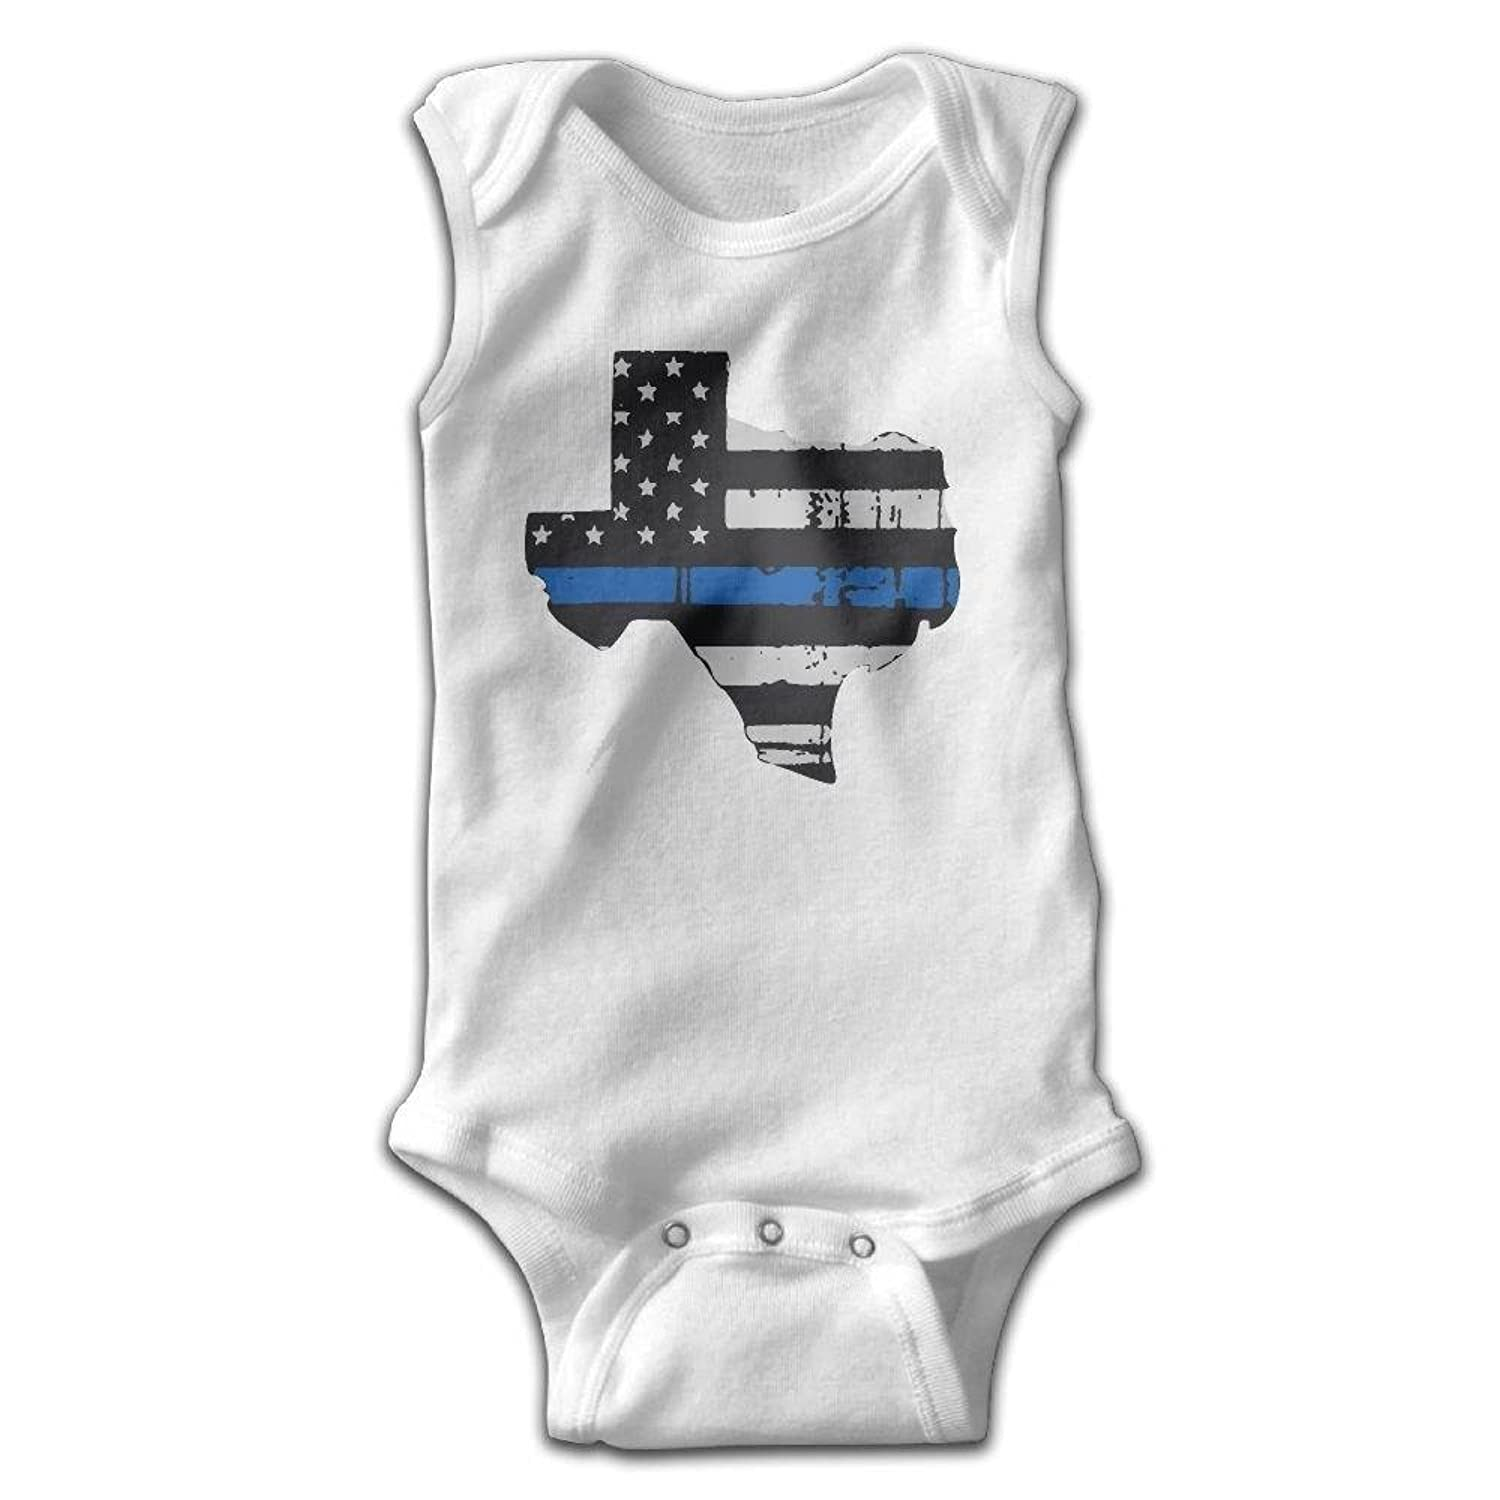 J122 This is My Life Suit 6-24 Months Short Sleeve Baby Clothes Climbing Clothes